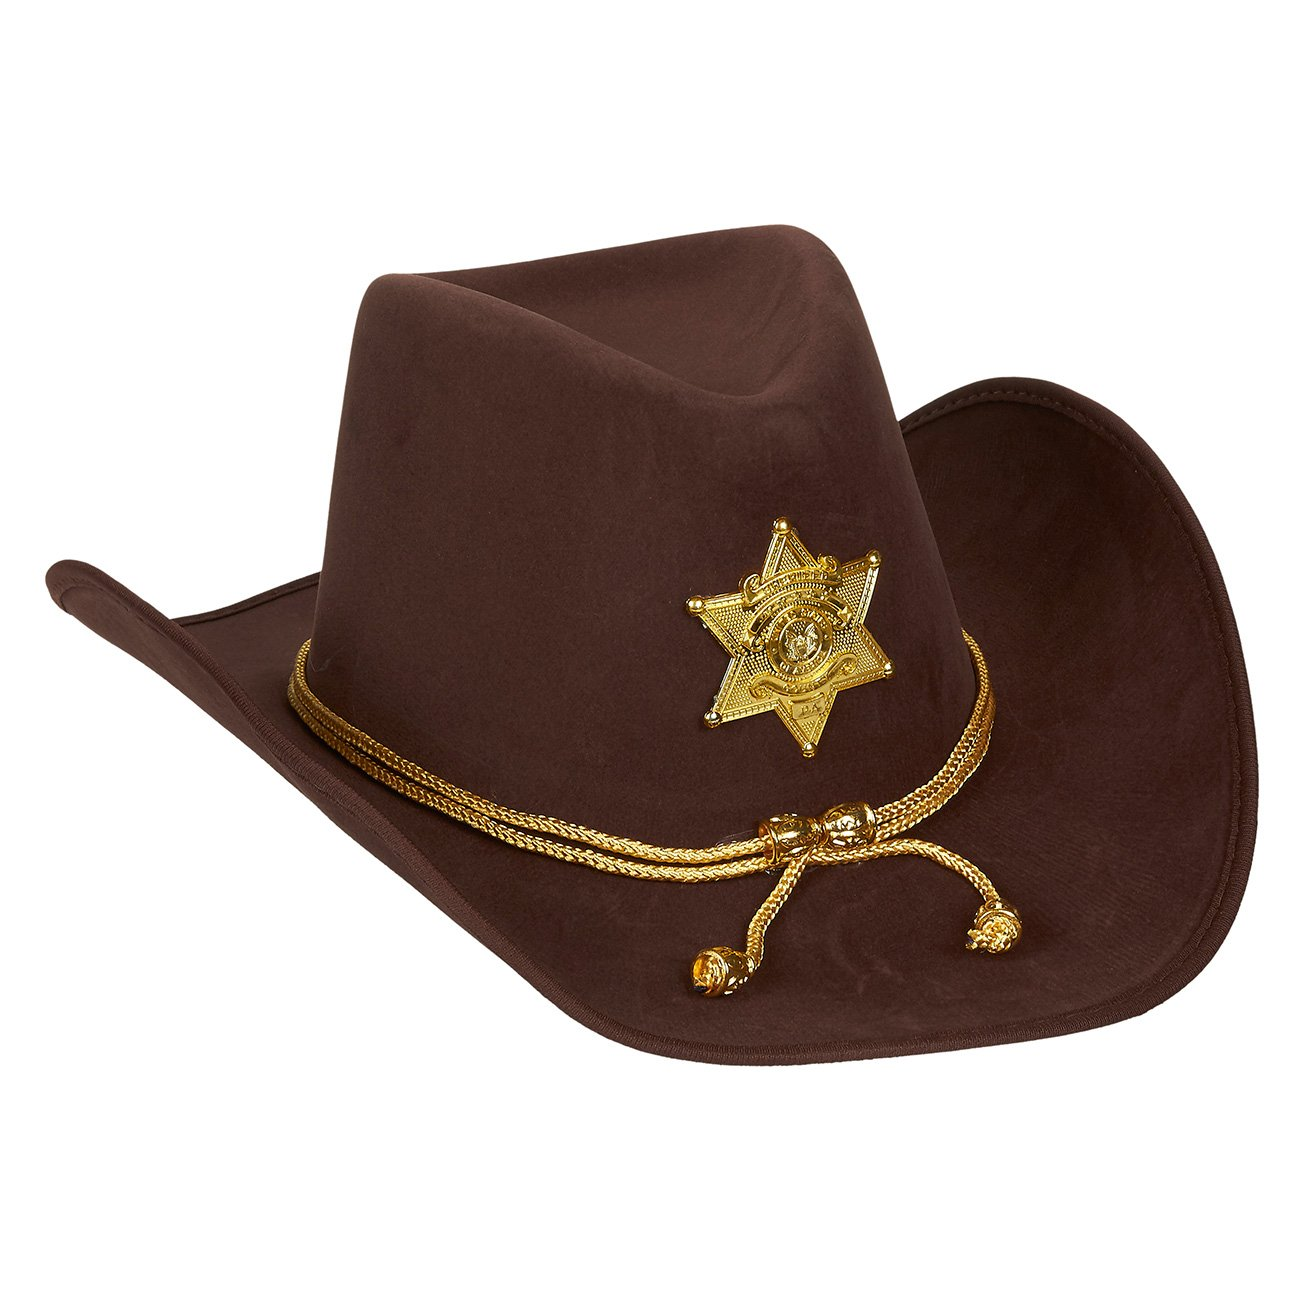 Novelty Felt Cowboy Sheriff's Hat - Fun Party Outfit Costume with Gold Braid for Halloween, Office Parties   B01N2A3IL8